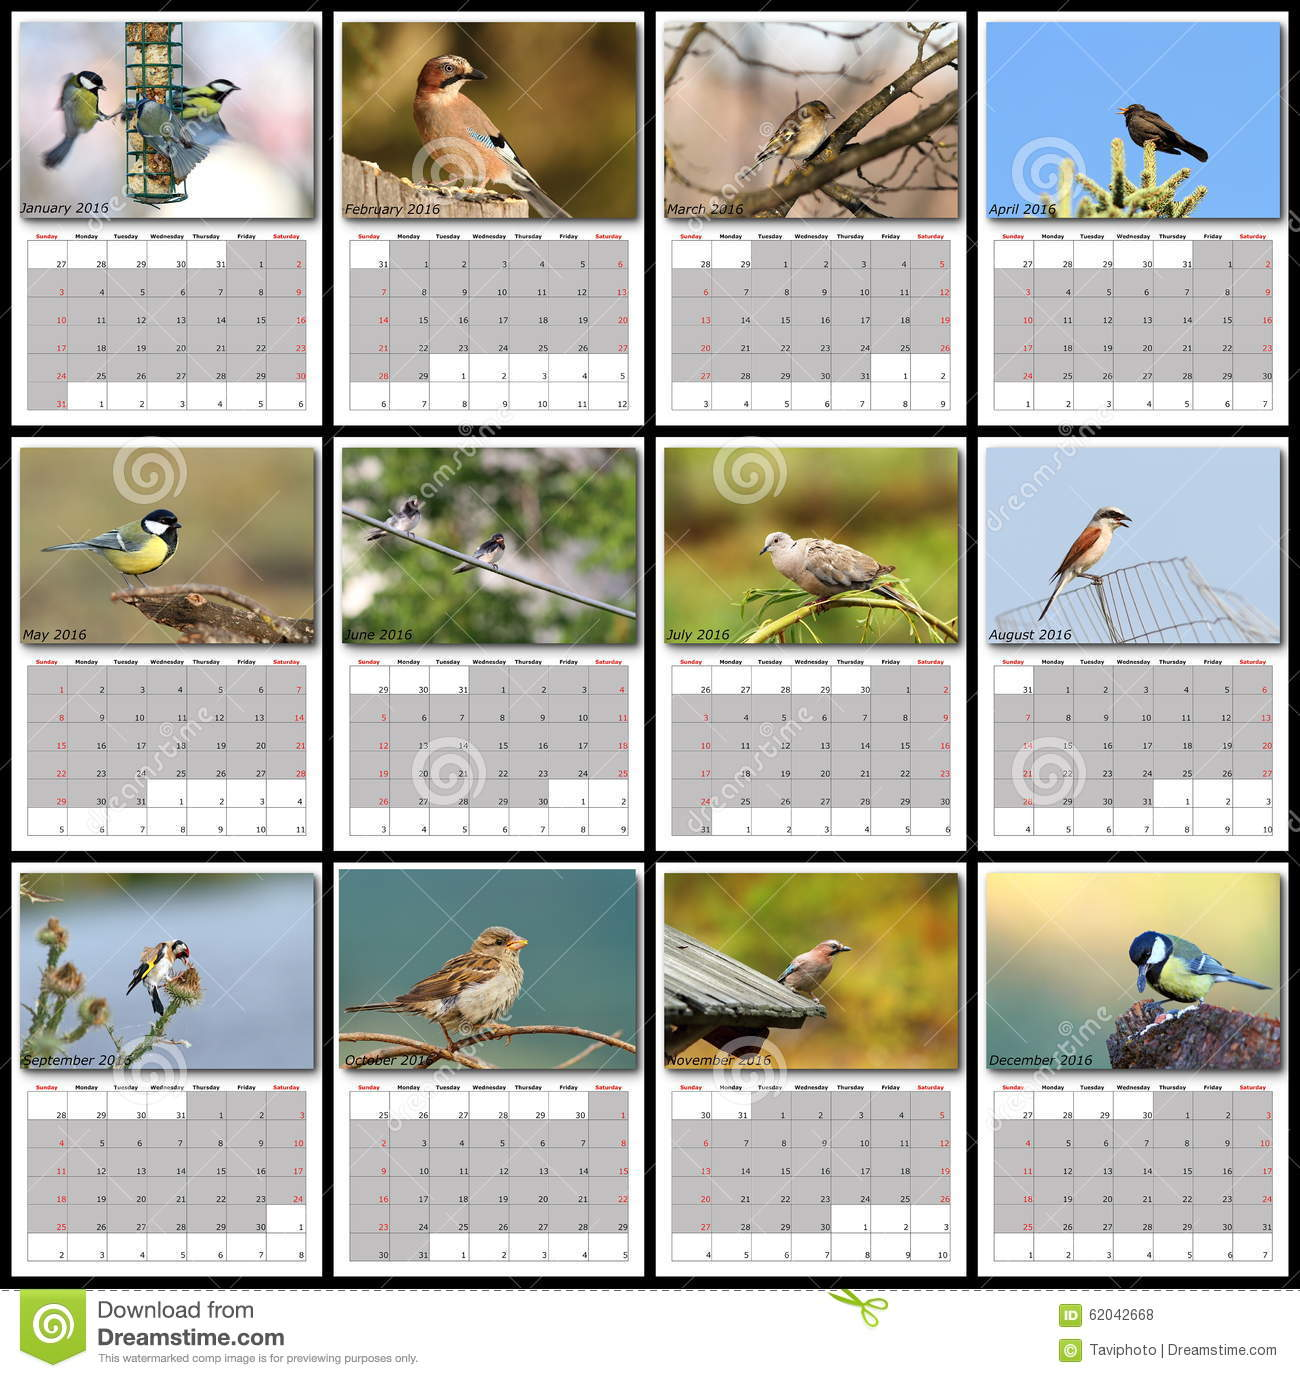 Garden birds calendar year 2016 stock photo image 62042668 for Gardening 2016 calendar